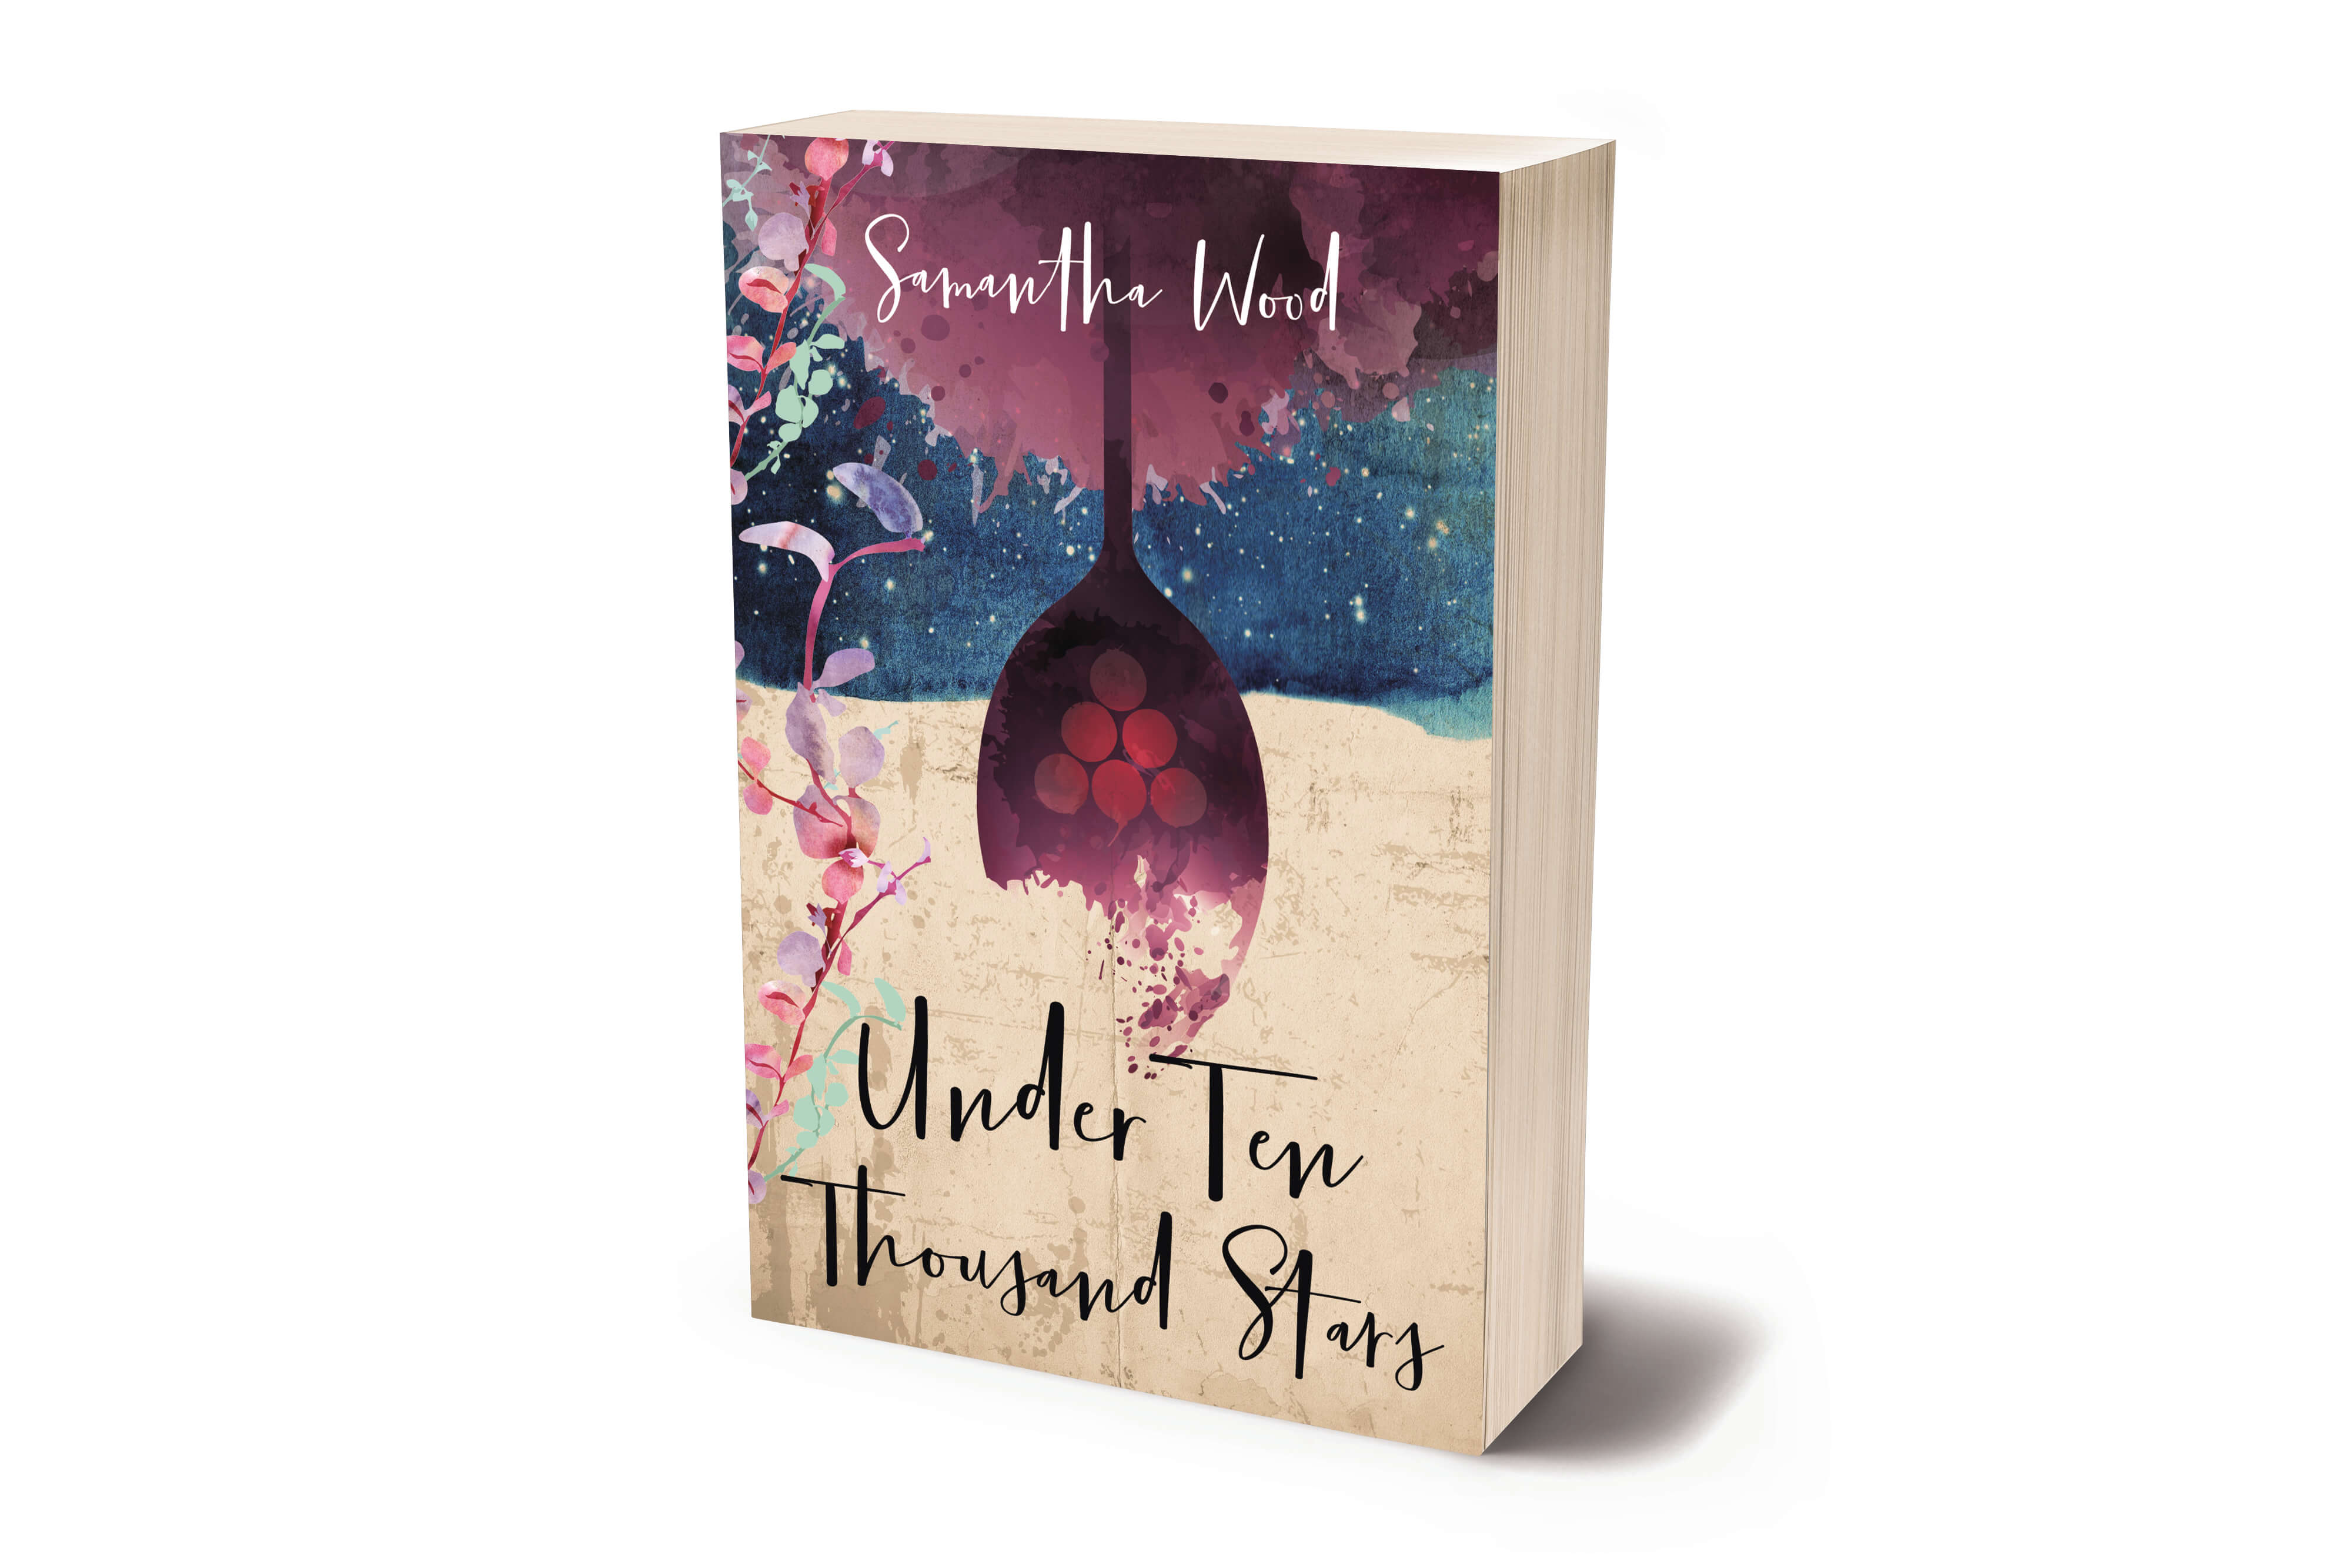 Under Ten Thousand Stars, a novel by Samantha Wood